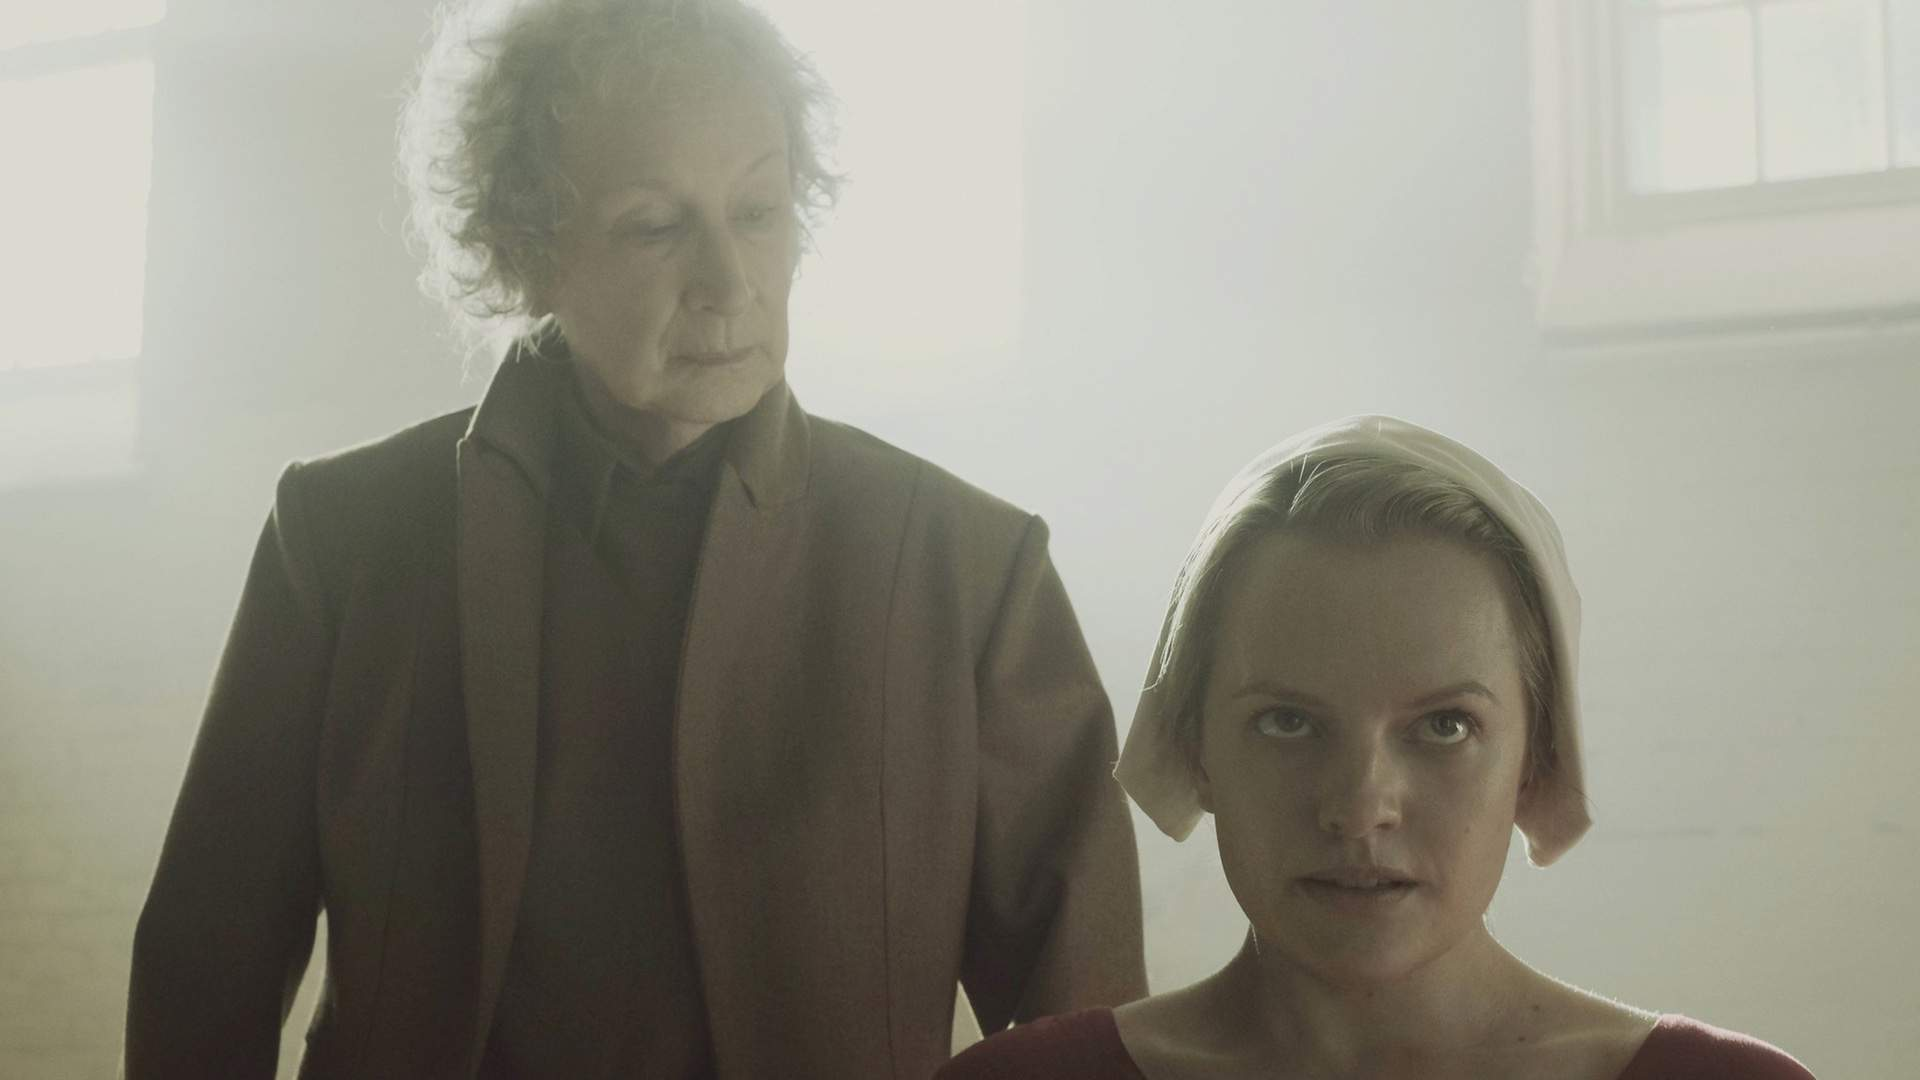 'The Handmaid's Tale' Author Margaret Atwood Is Heading on a Tour of Australia and NZ